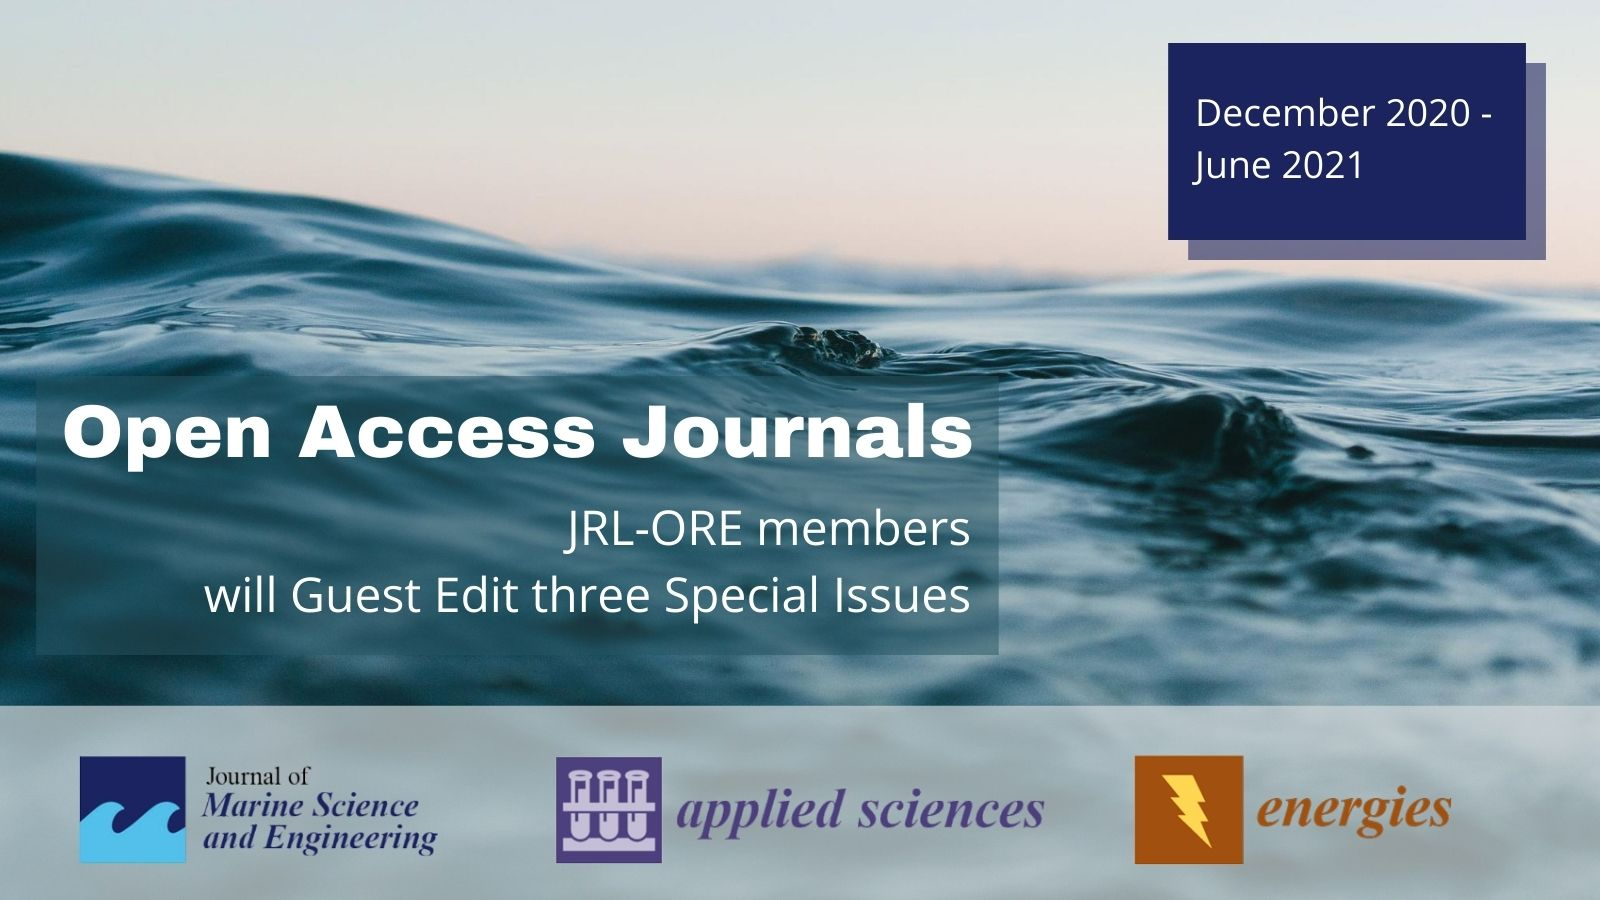 Open Access journals and wave